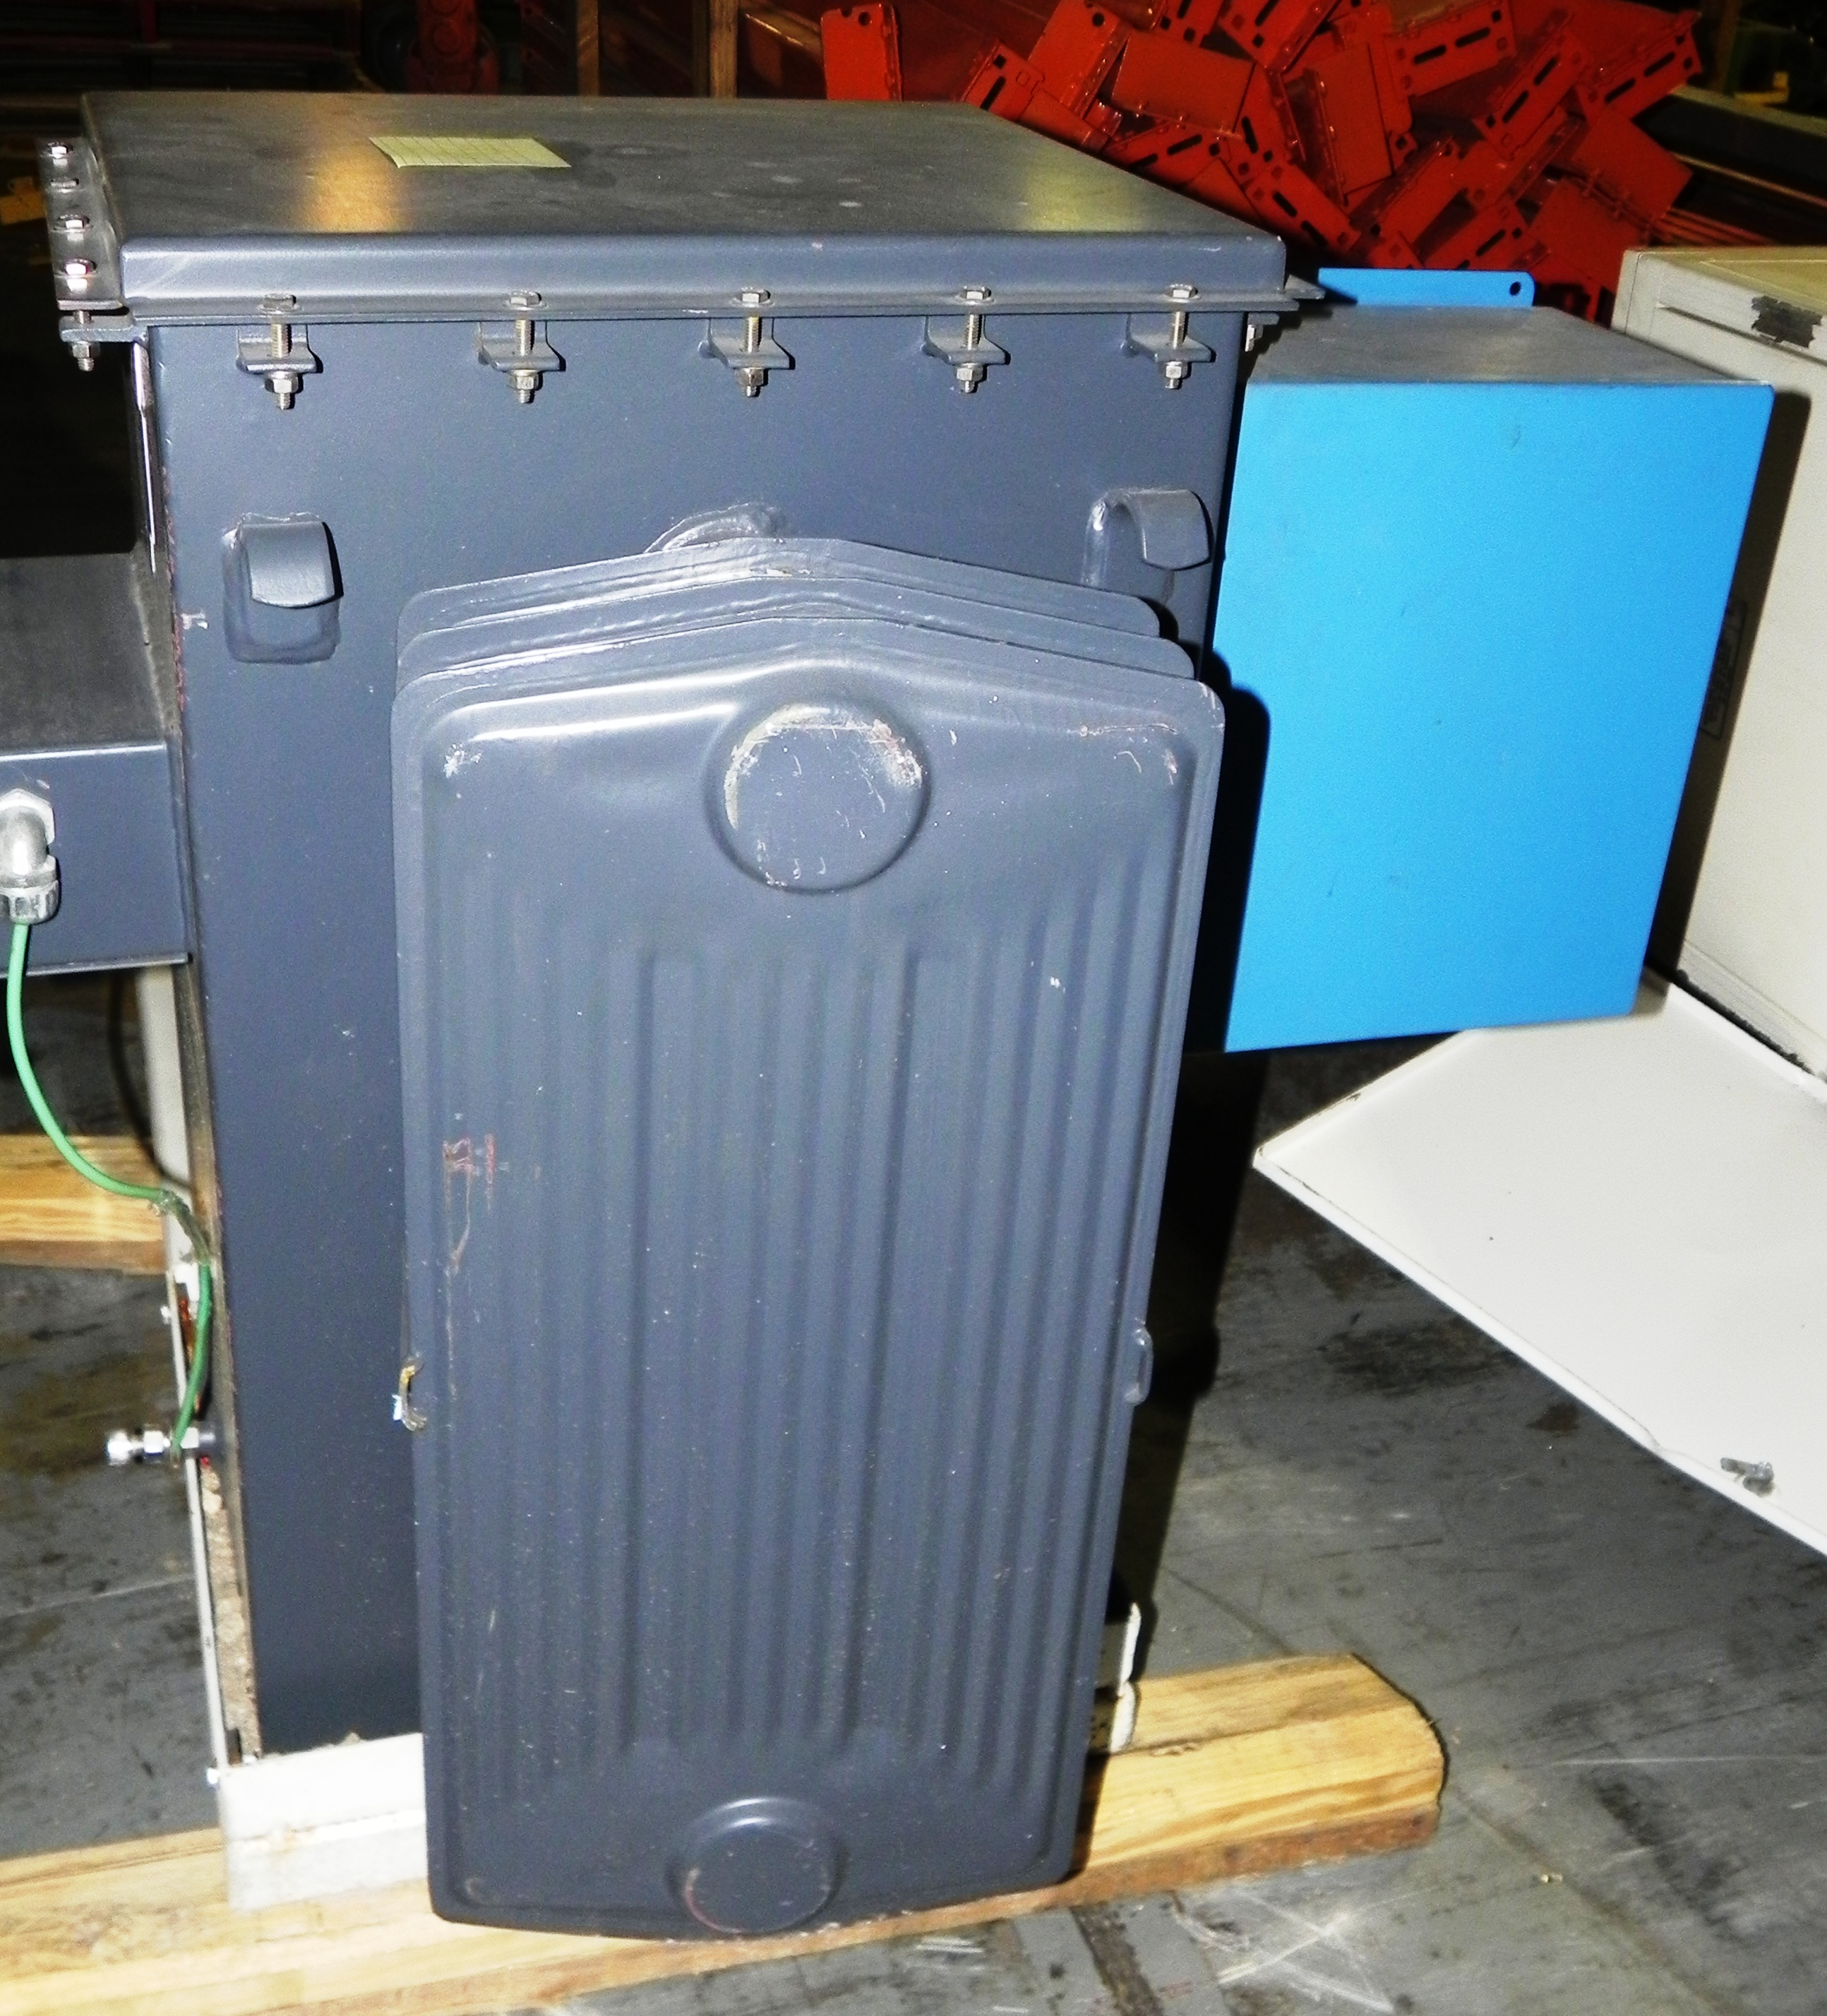 Lot 87 - NWL 34 KVA Transformer Model 36455